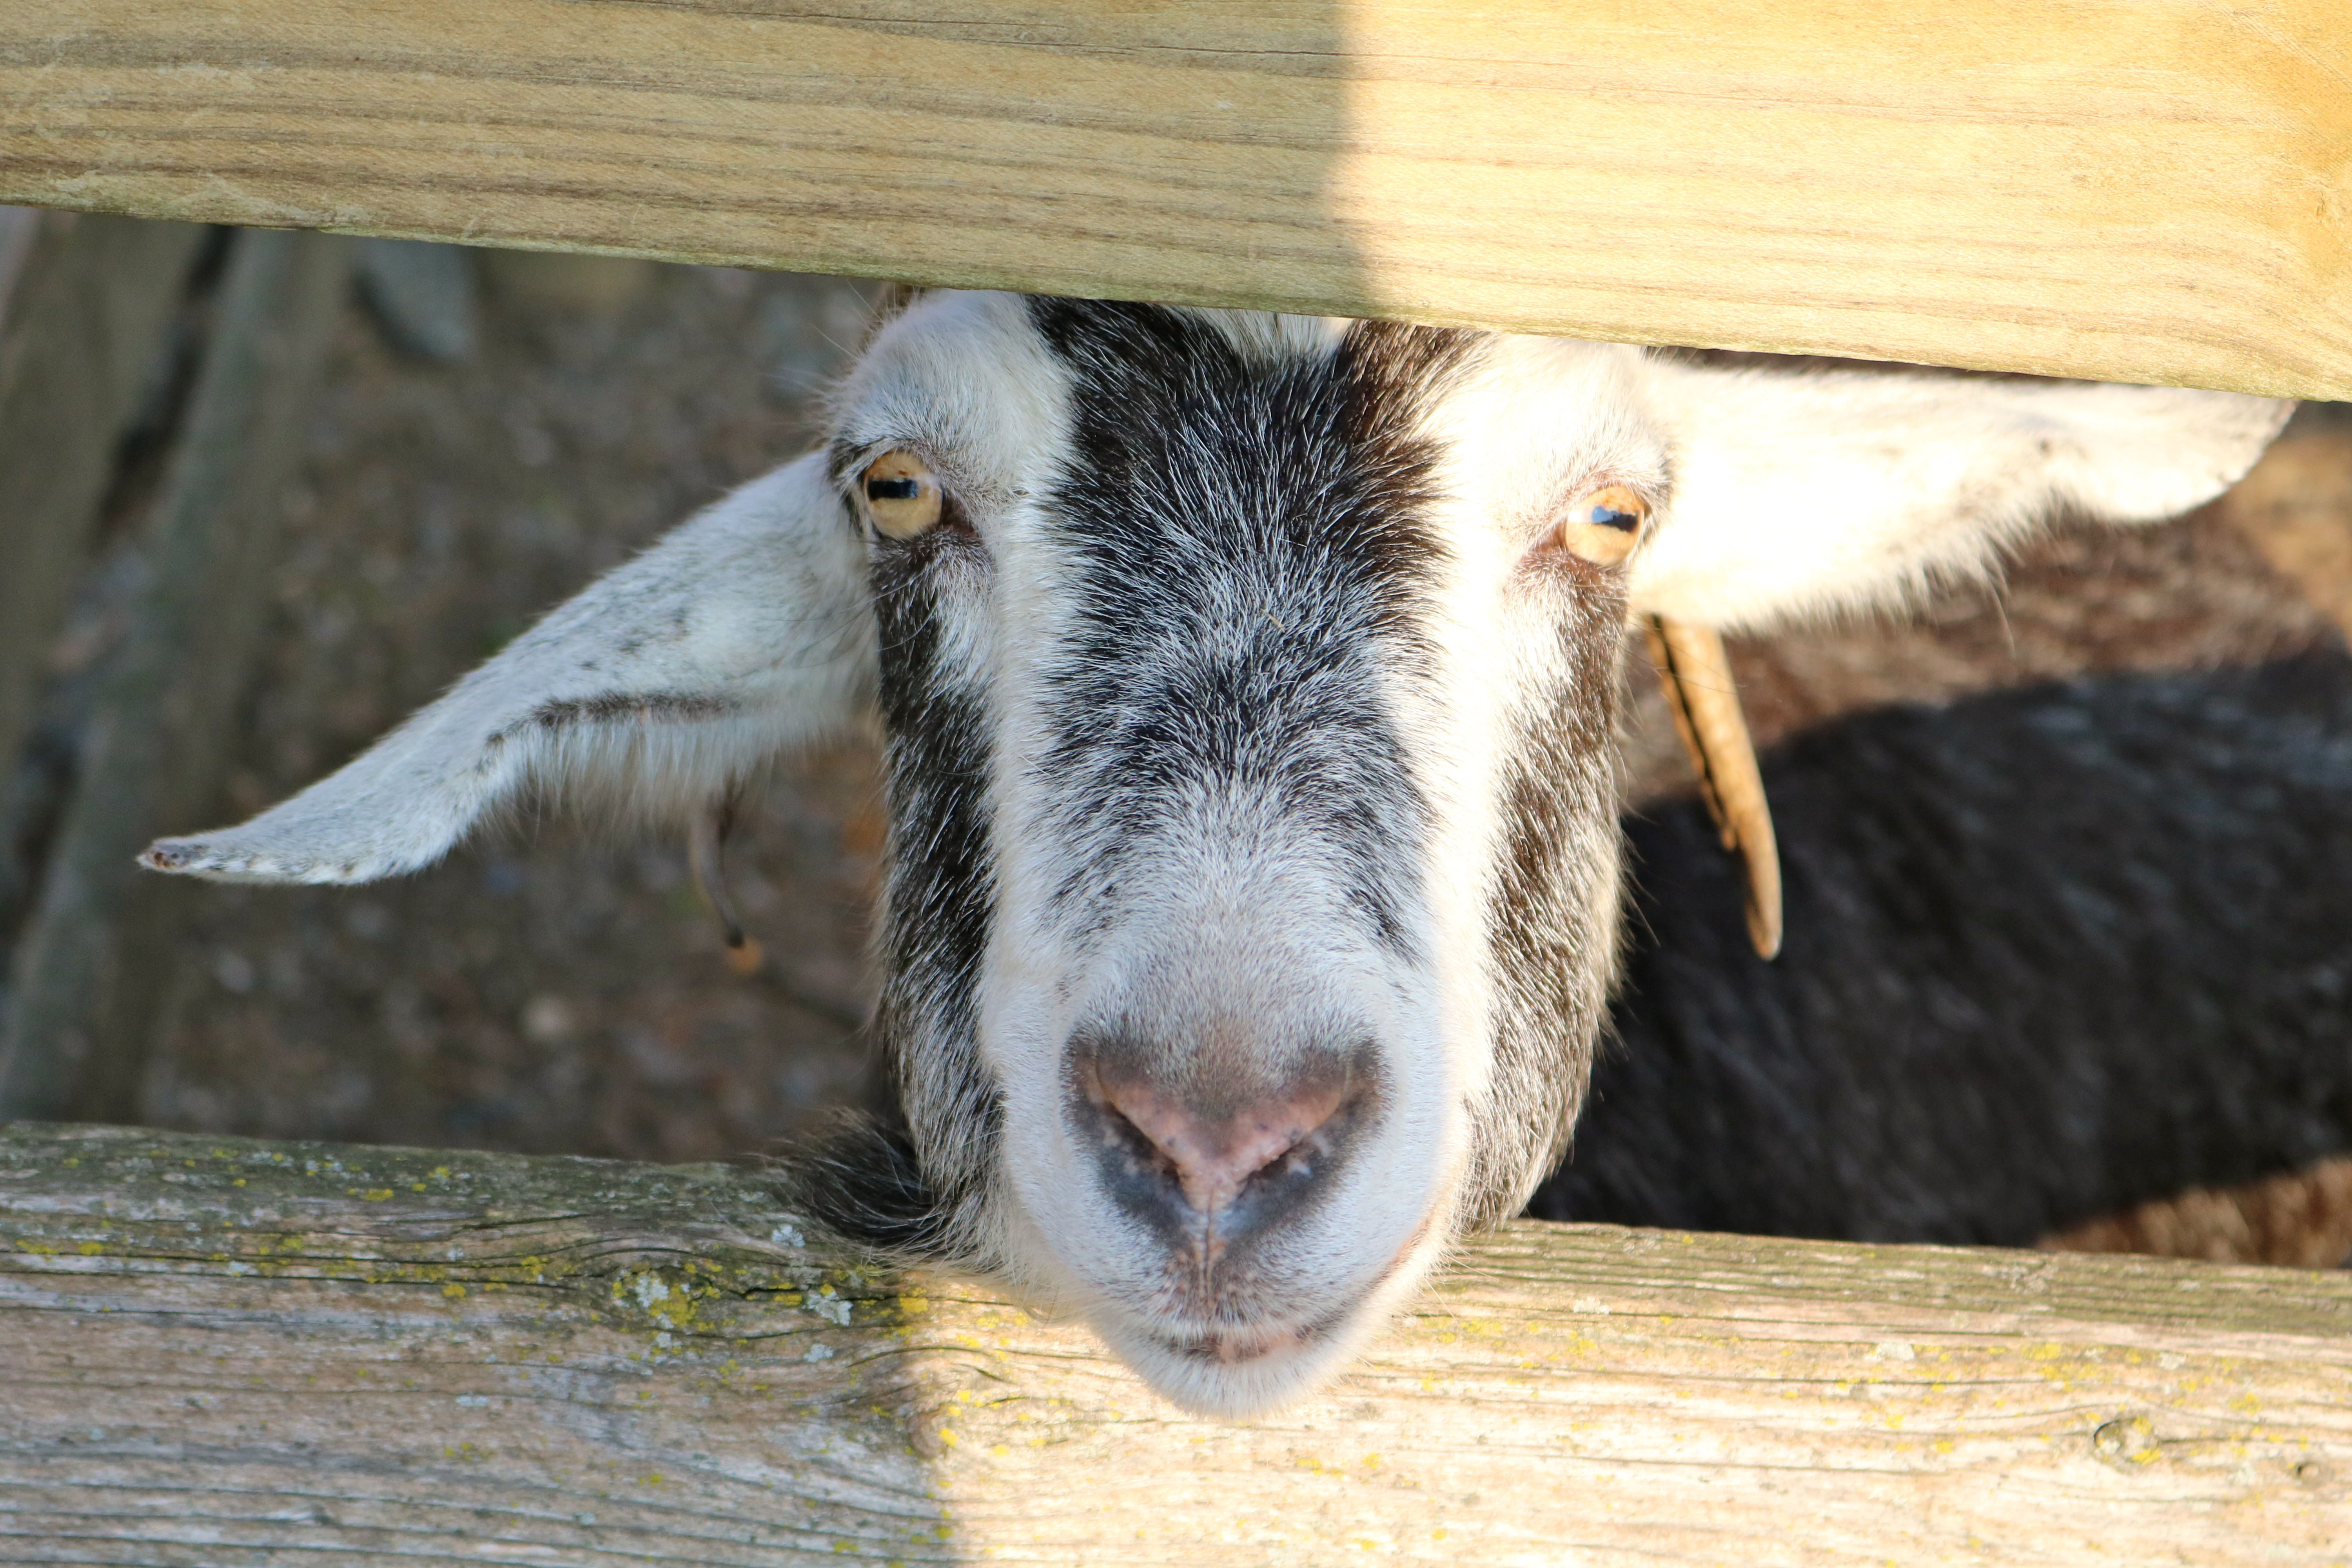 the face of a goat sticking out from between two fence boards